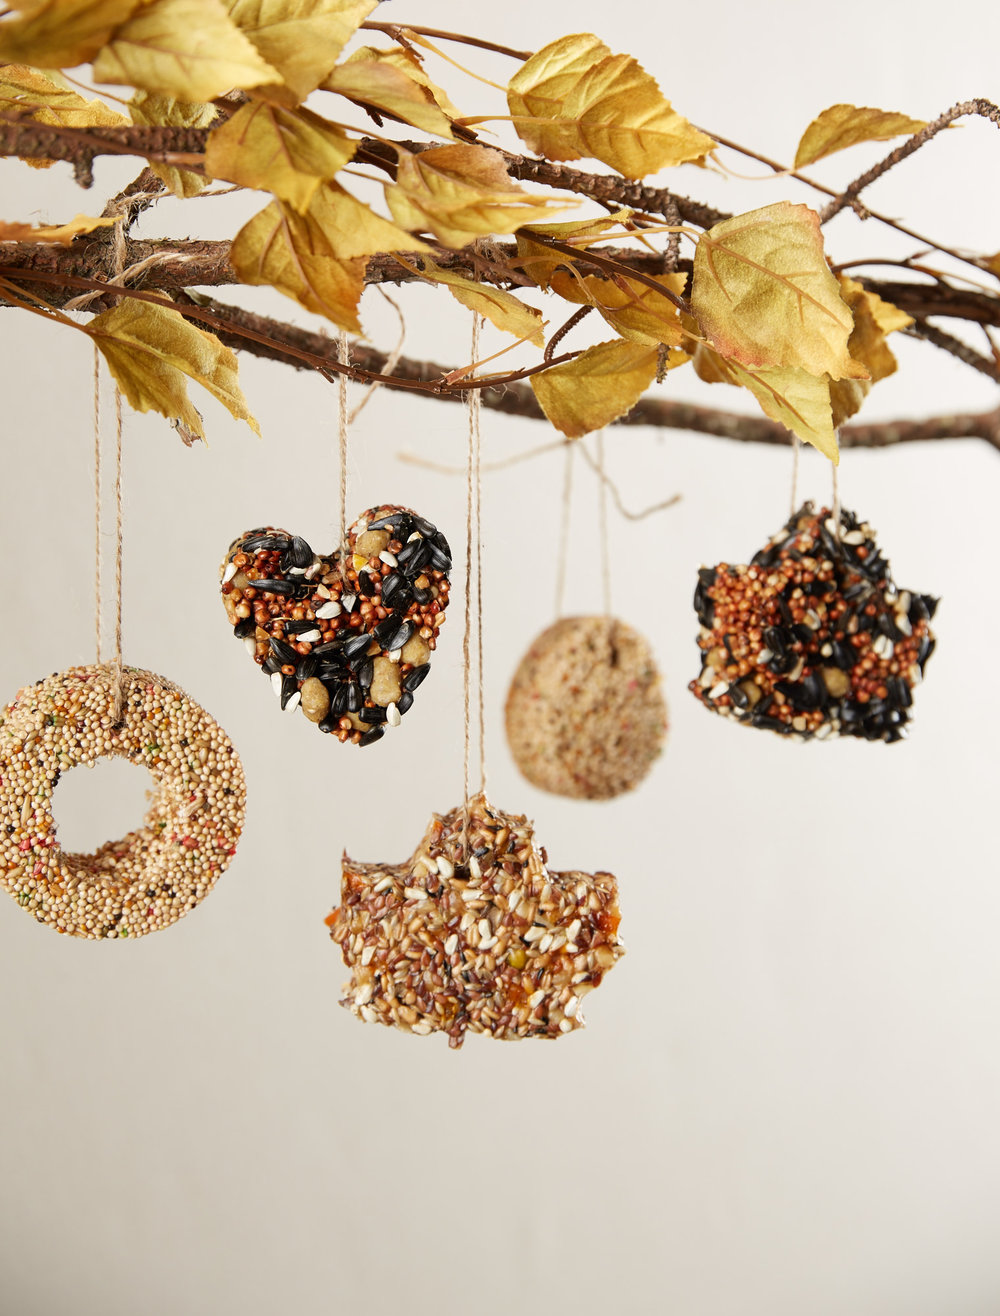 Cookie Cutter Bird Feeders  for  Oshkosh B'Gosh |   Steve Pomberg